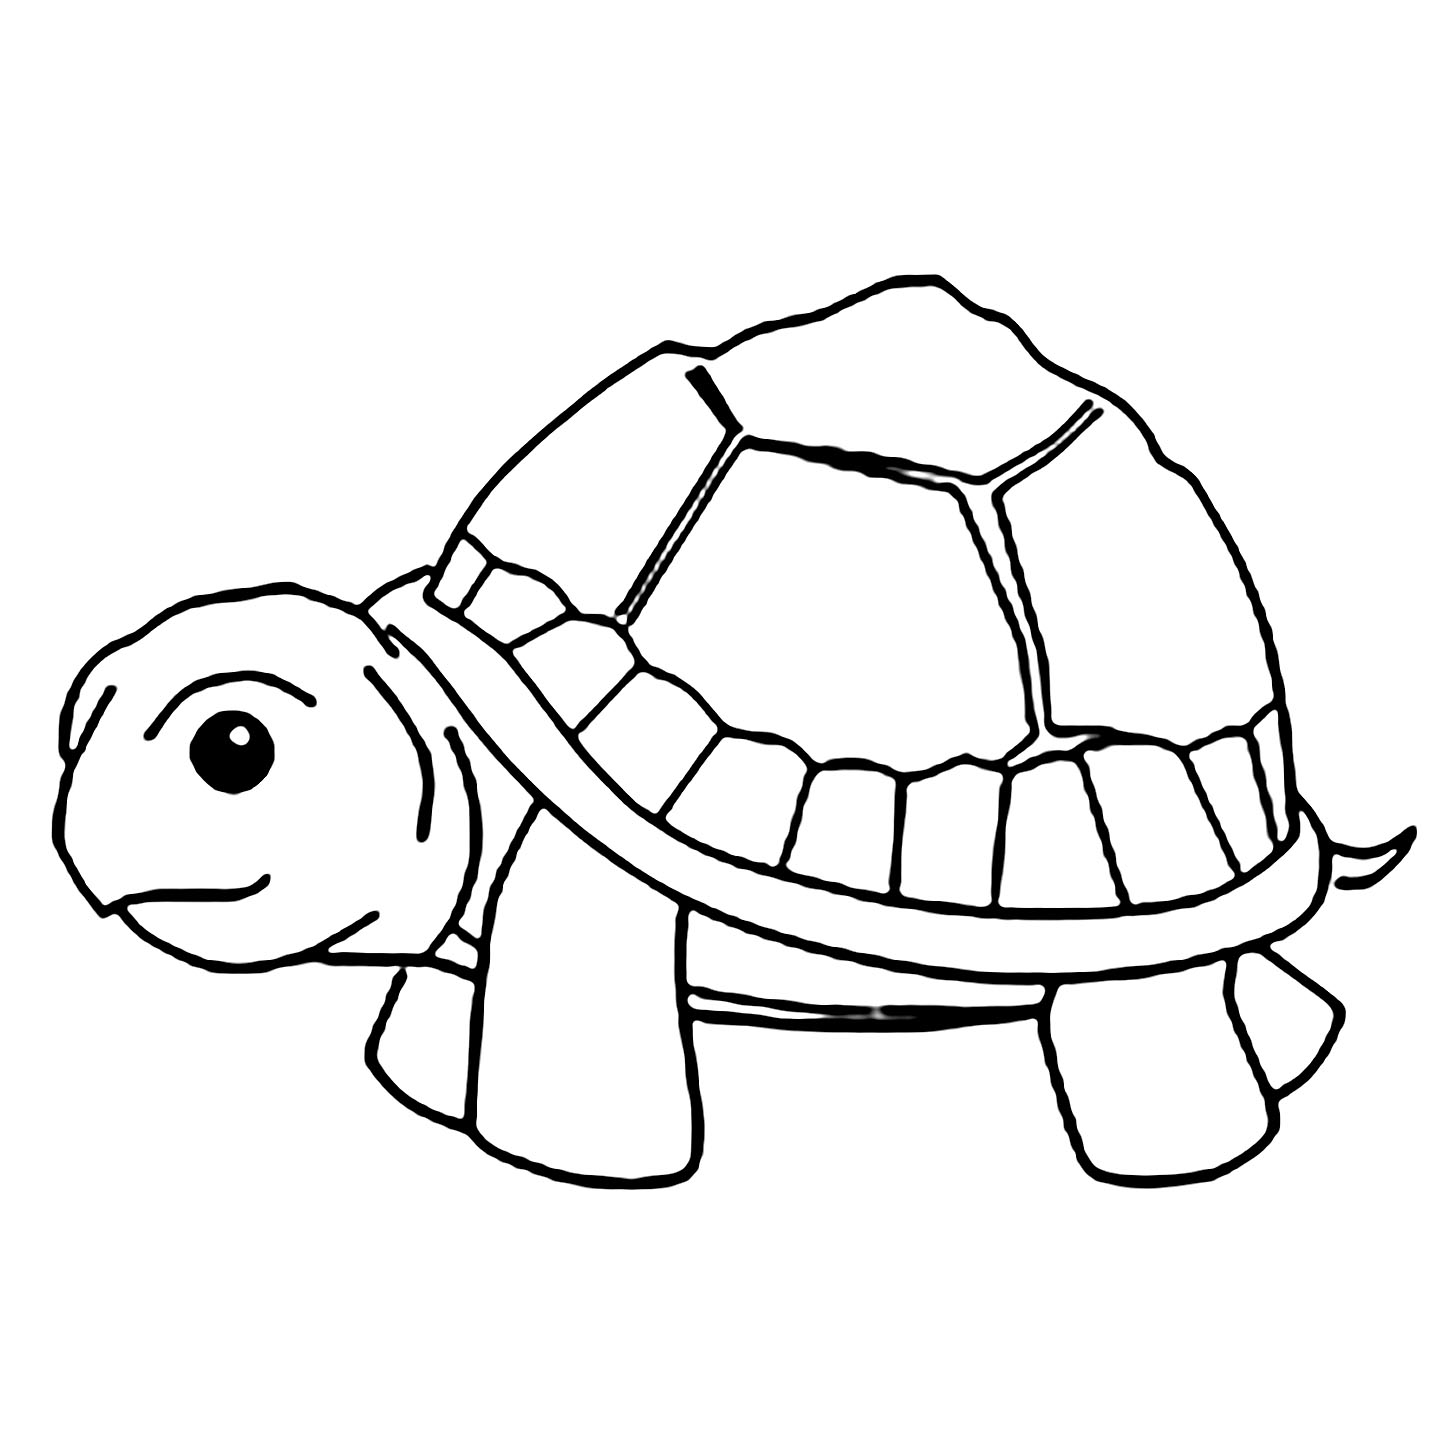 tortoise colouring pictures coloring pages turtles free printable coloring pages tortoise pictures colouring